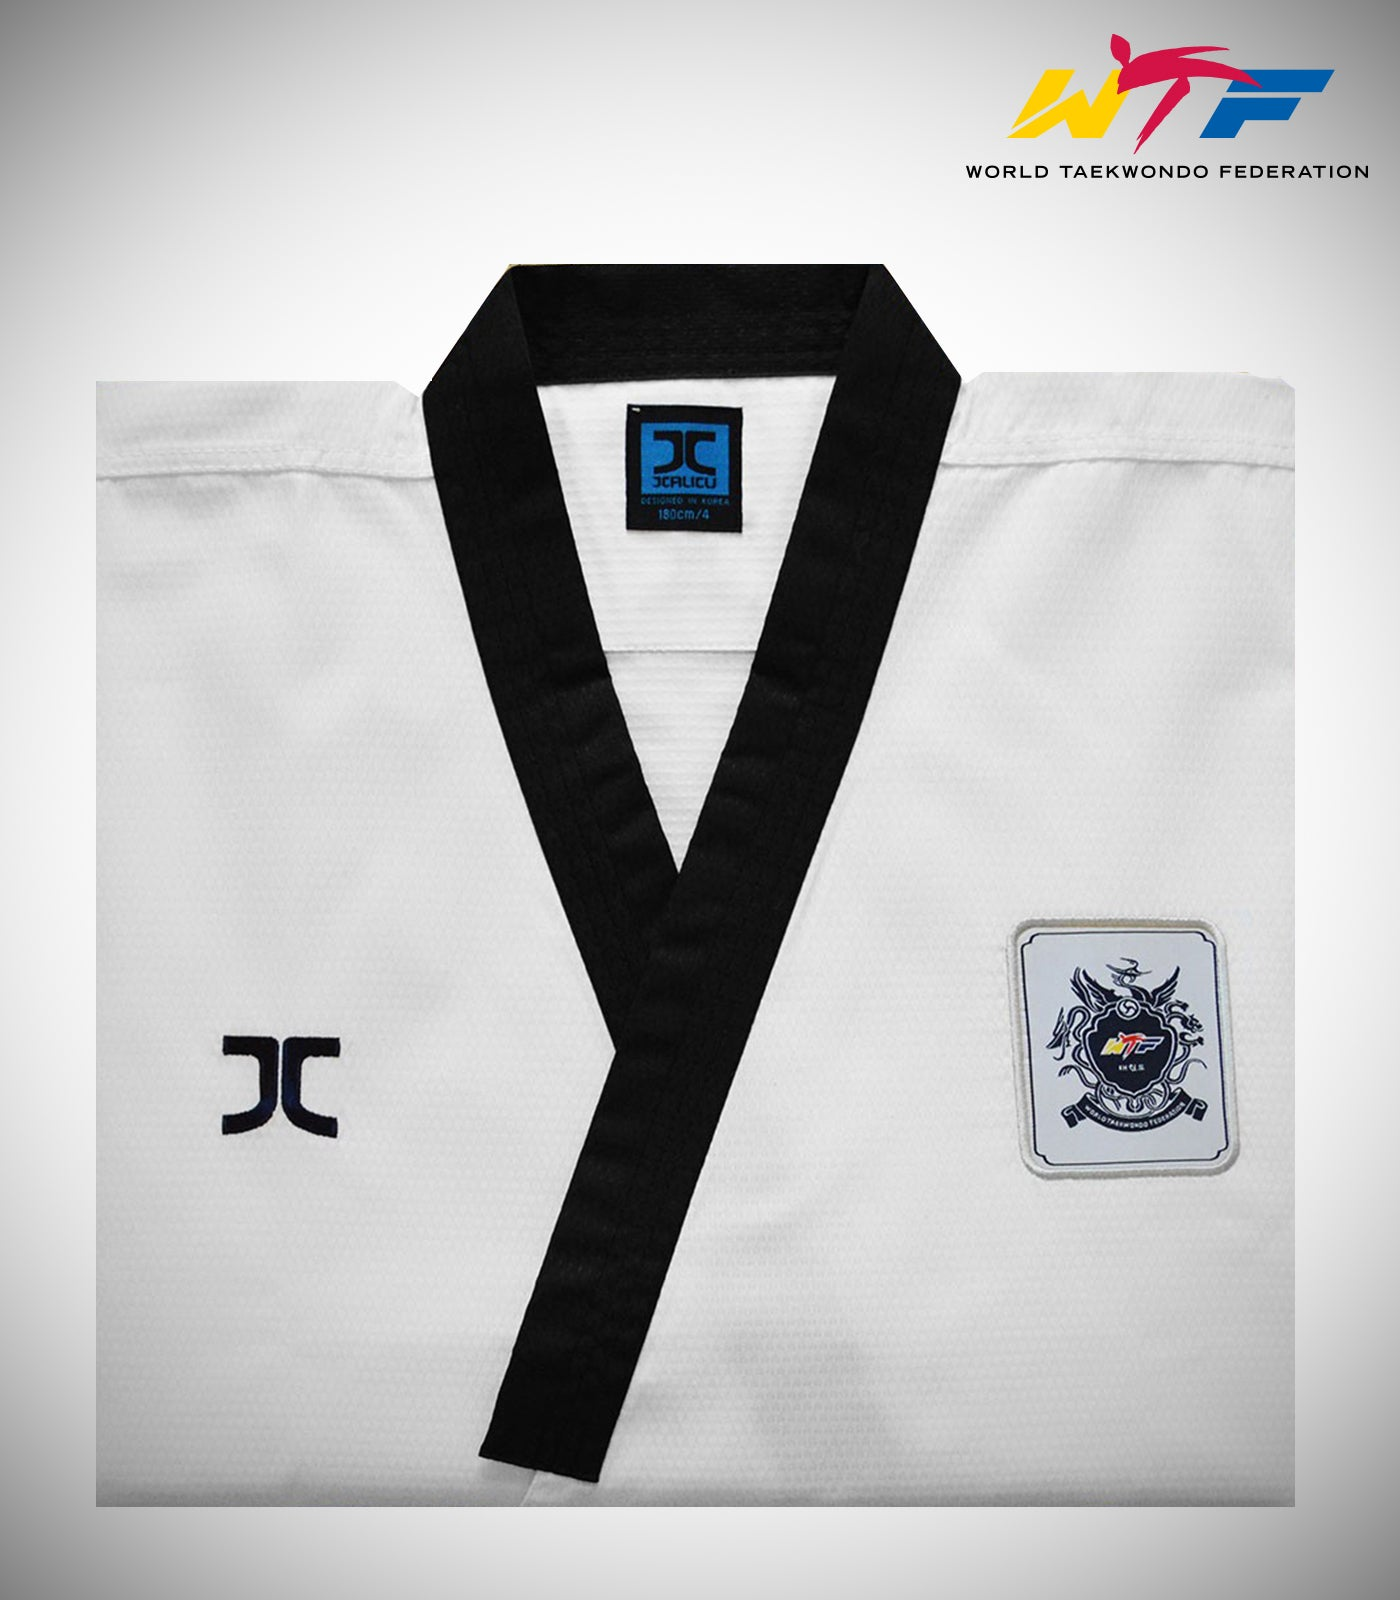 JC ADULT FEMALE POOMSAE DIAMOND UNIFORM